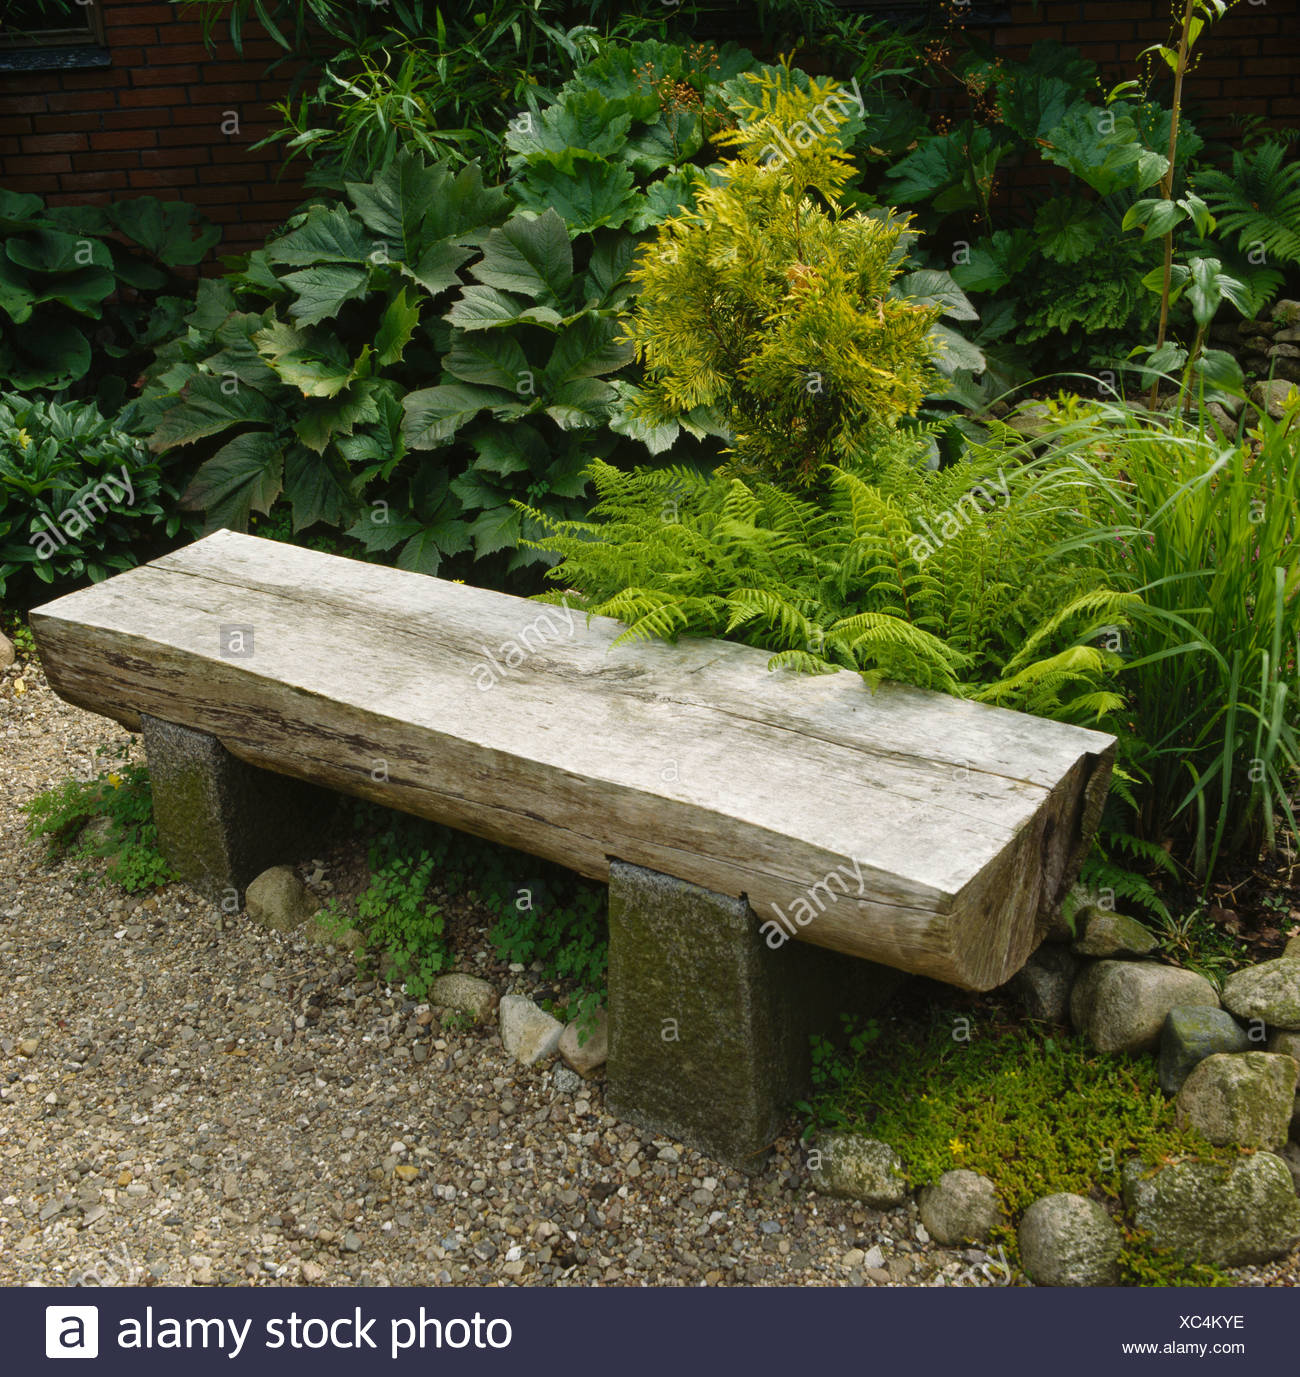 Fantastic Recycled Wooden Garden Bench In Front Of Ferns And Gunnera Machost Co Dining Chair Design Ideas Machostcouk